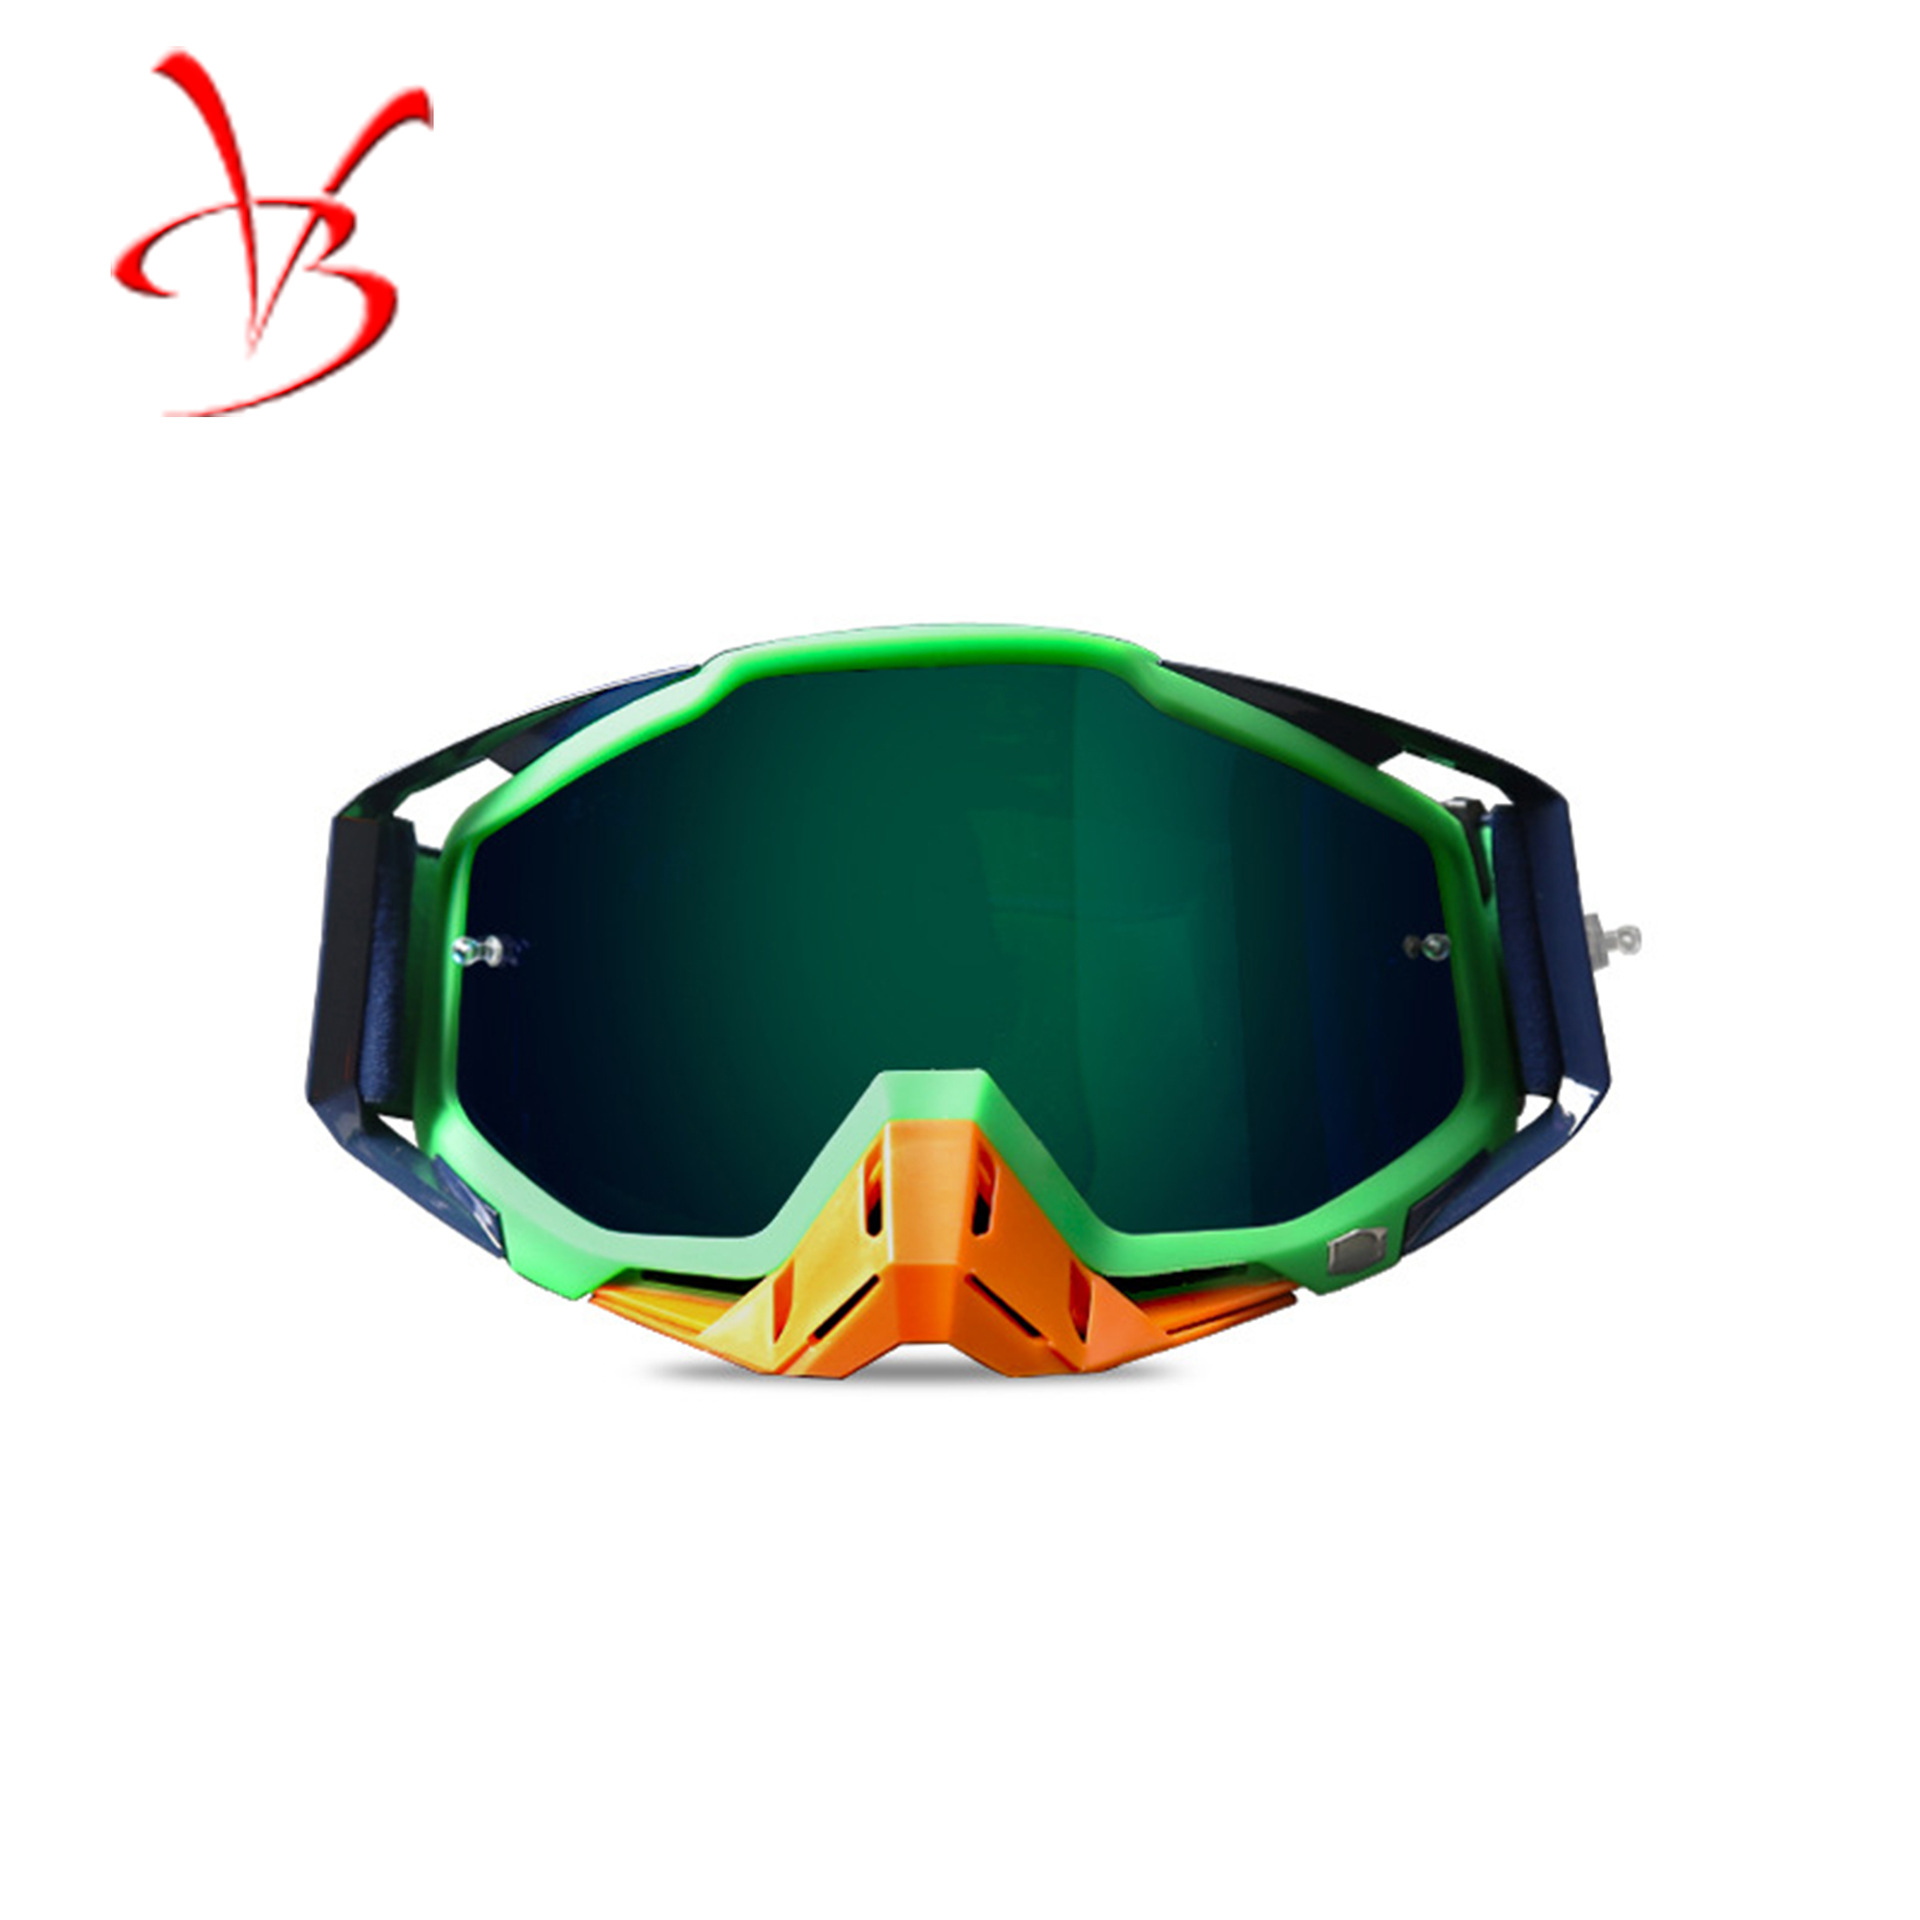 100% Goggles For Motorcycle Off-road Race Car Goggles Outdoor Riding Eye Protection Wind-proof Glasses Skiing Goggles